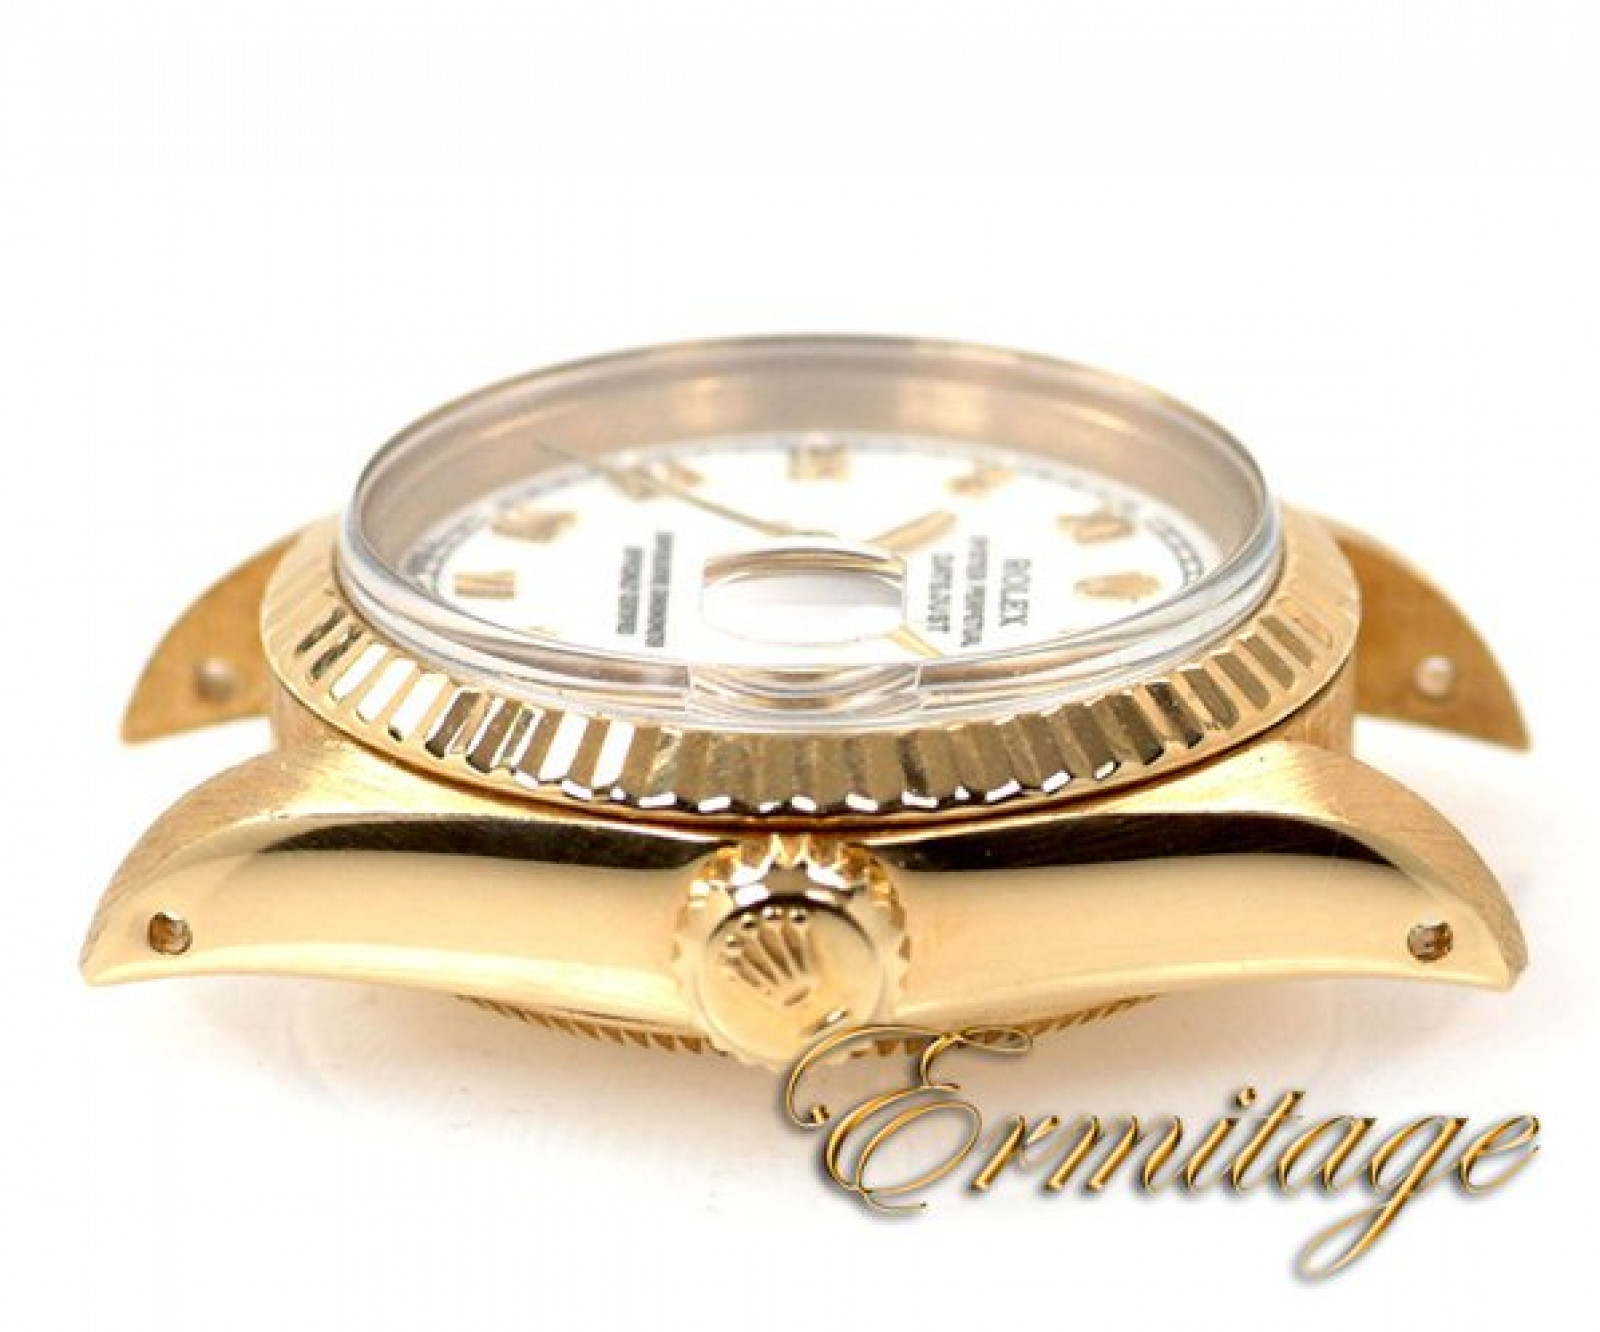 Rolex Datejust 6917 Gold